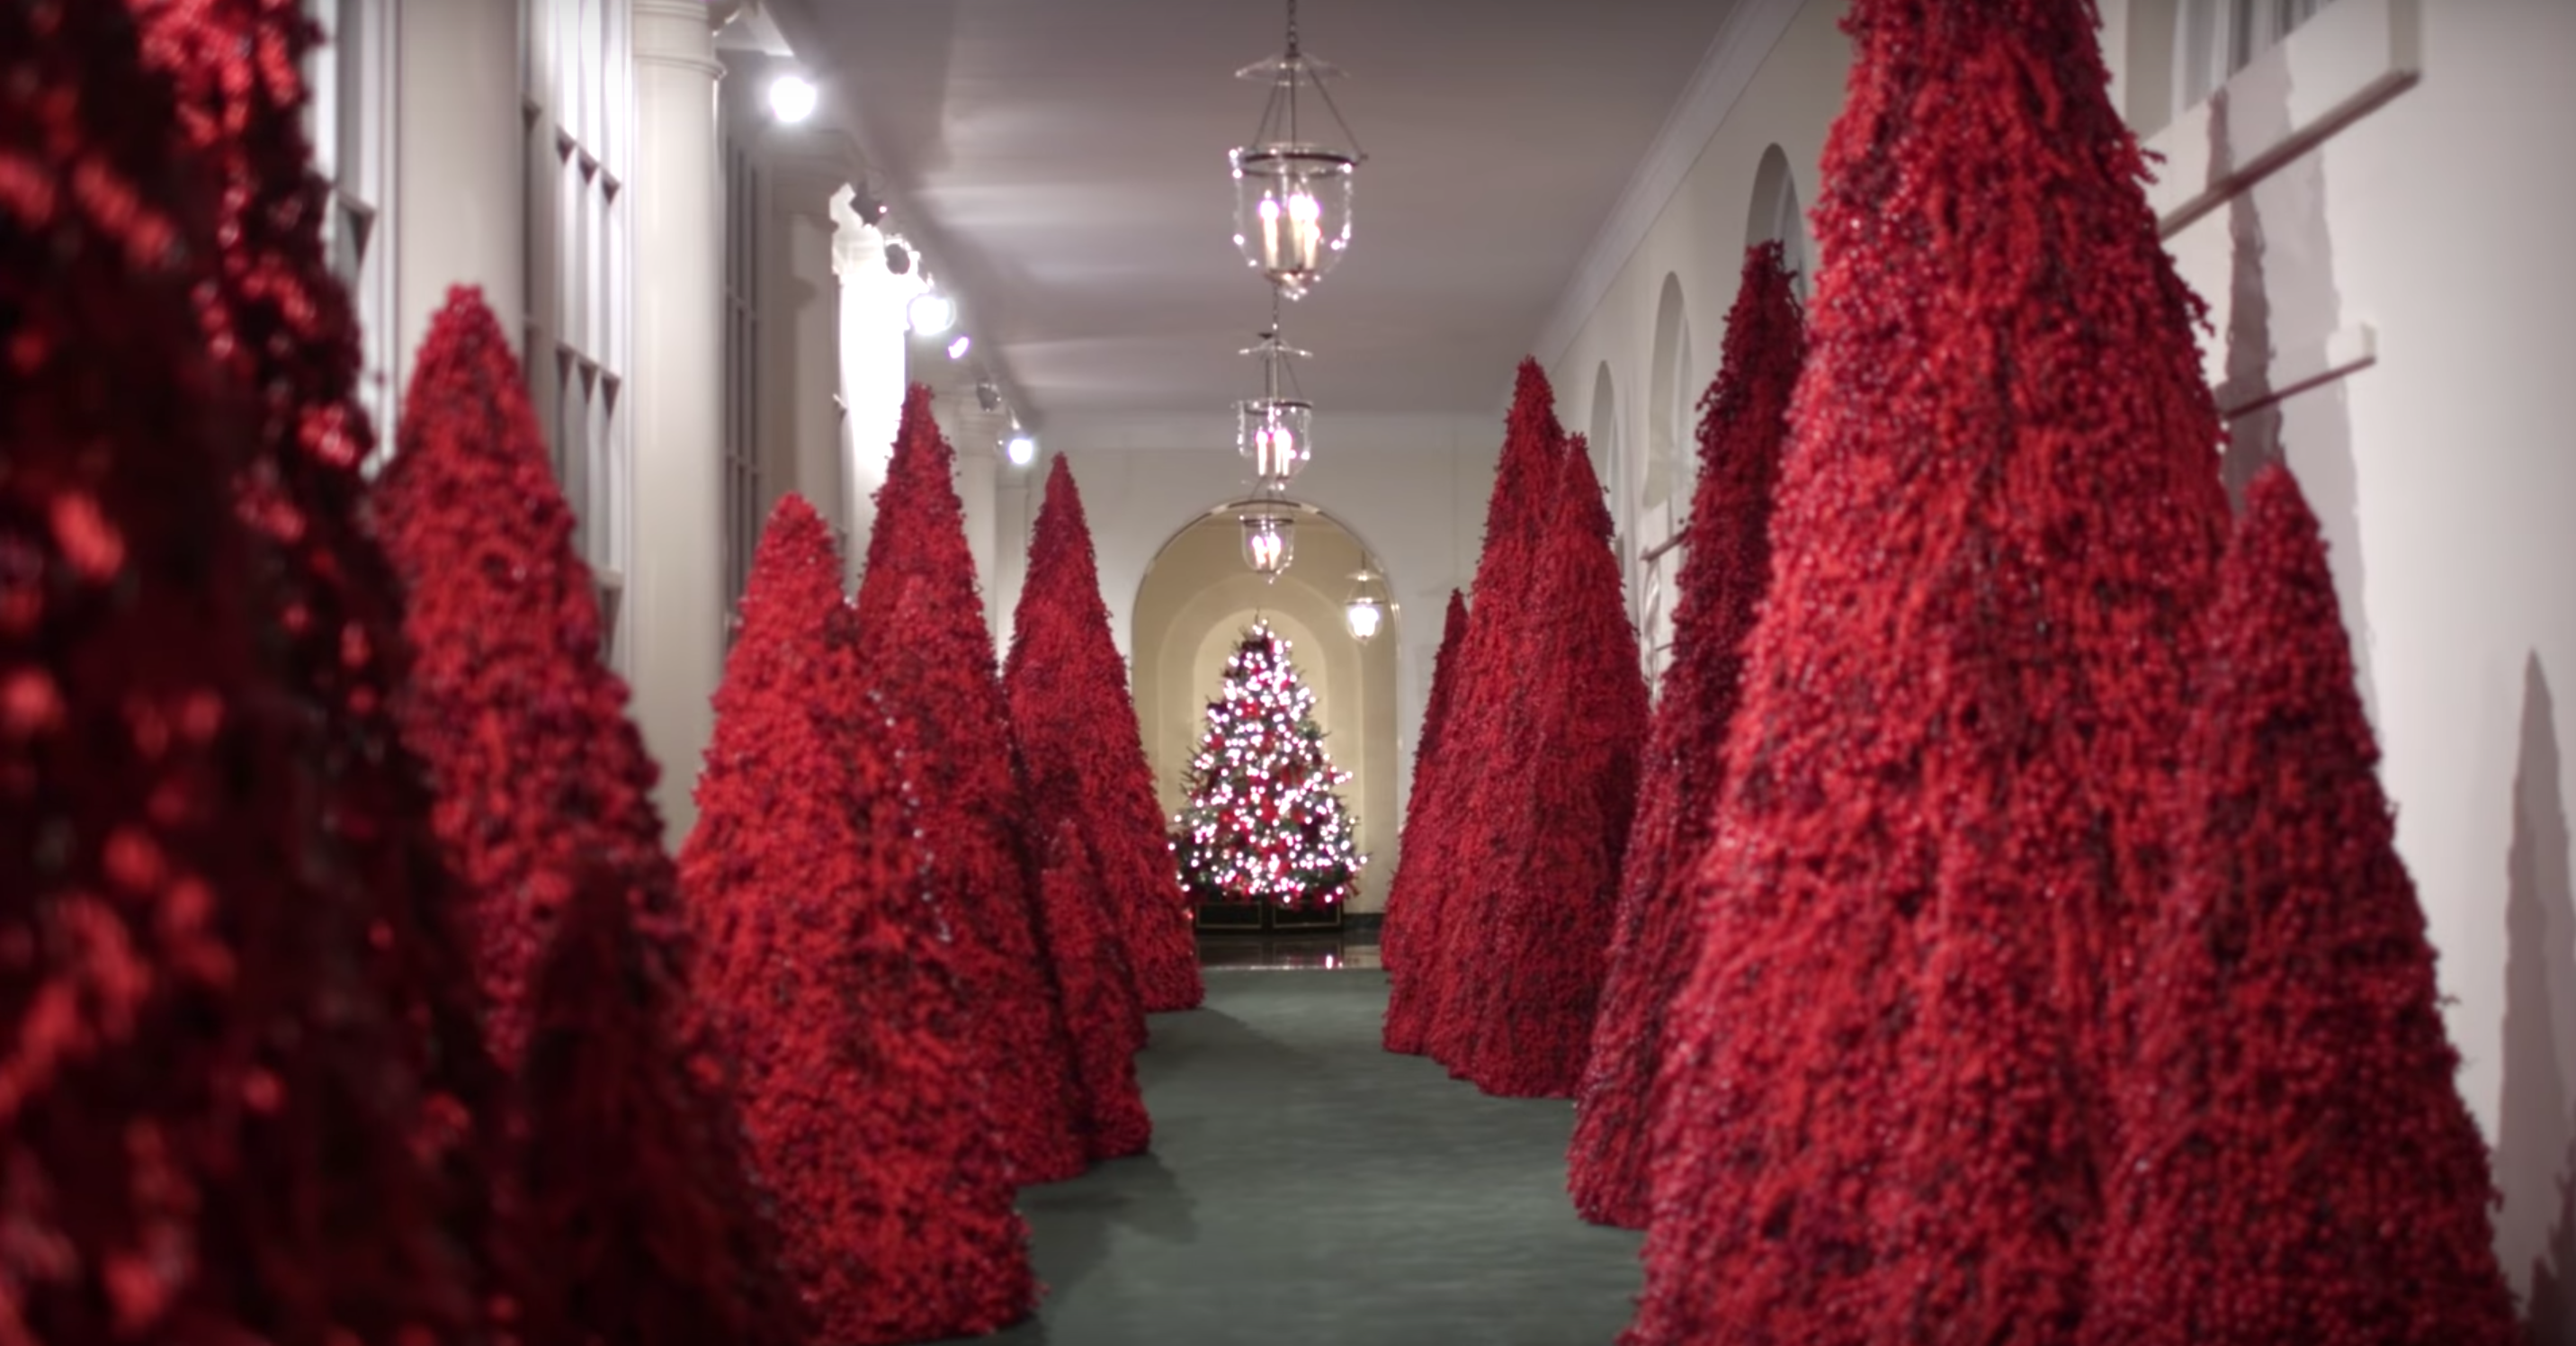 The White House's scary Christmas decorations are back